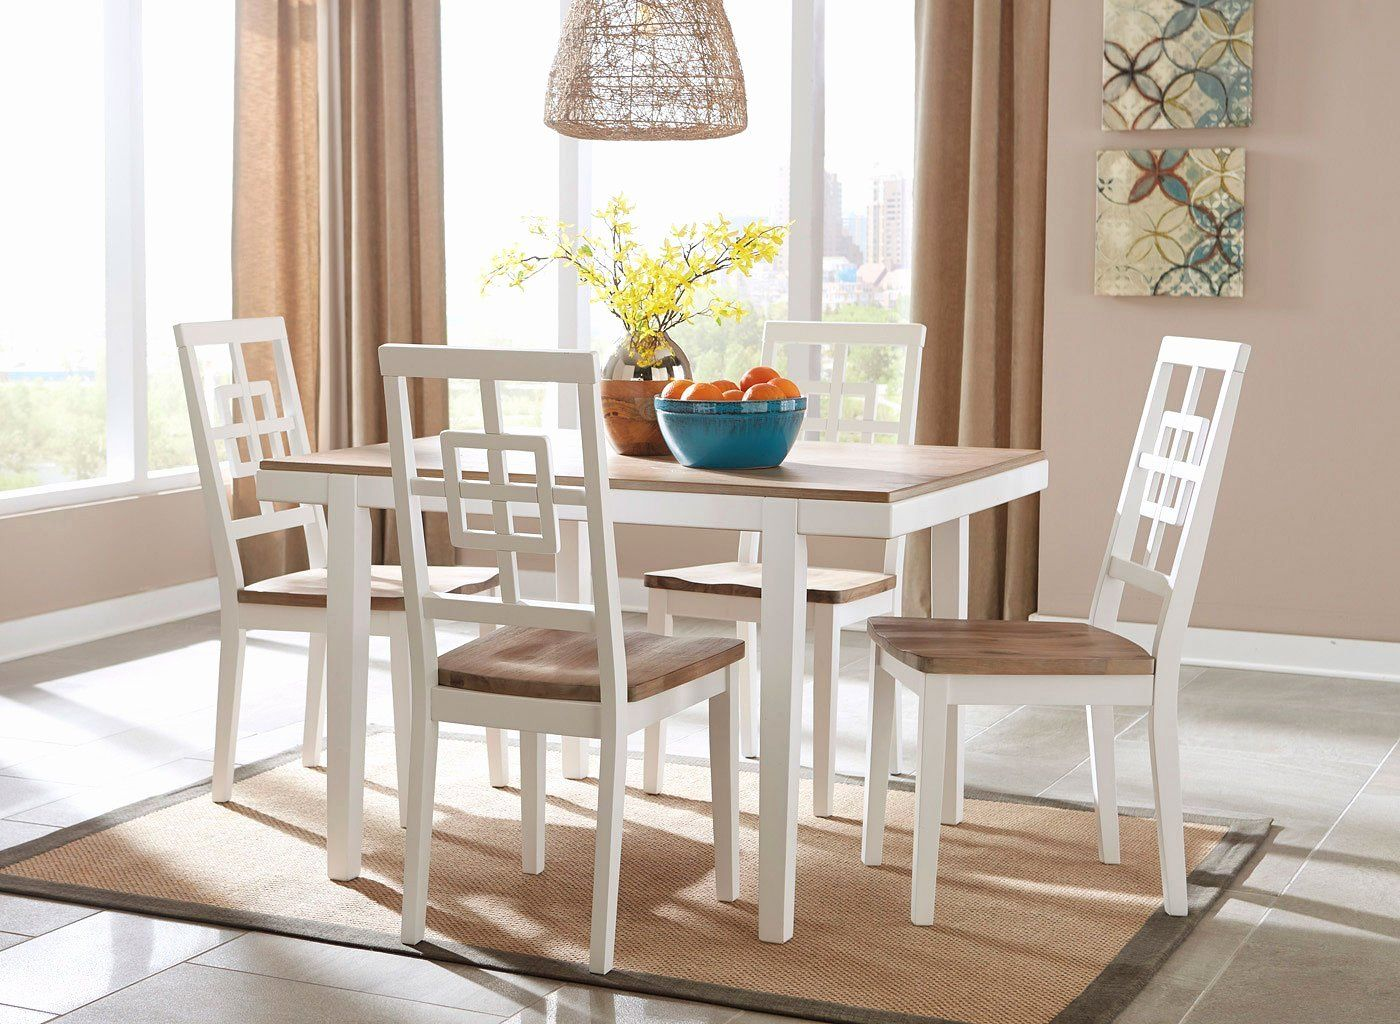 Pin On Dining Table Set